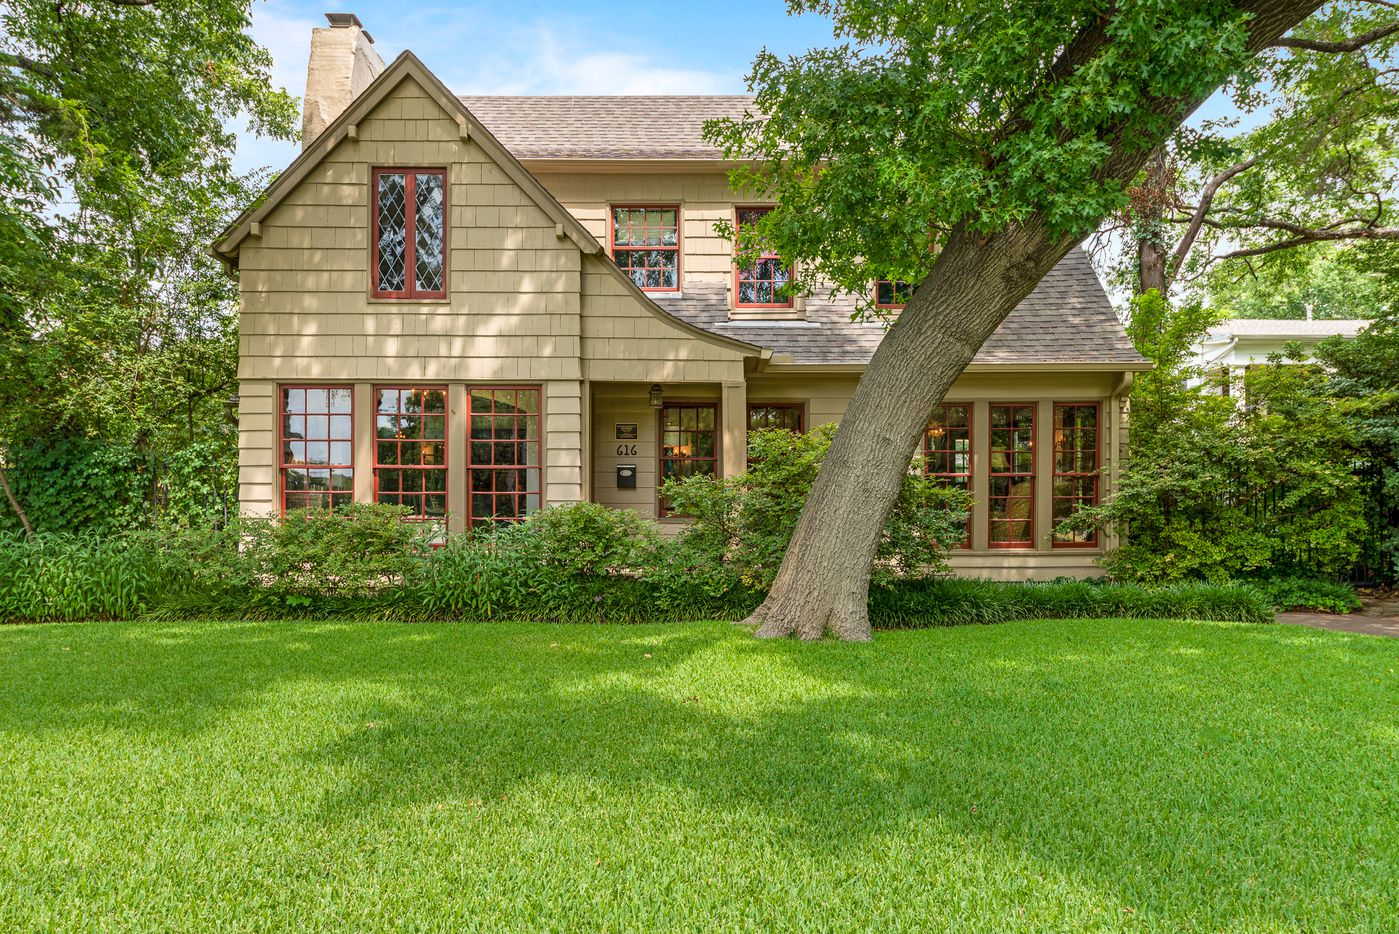 A look at 616 Blaylock Drive in Dallas, one of the houses on the 2019 Heritage Oak Cliff Home Tour.